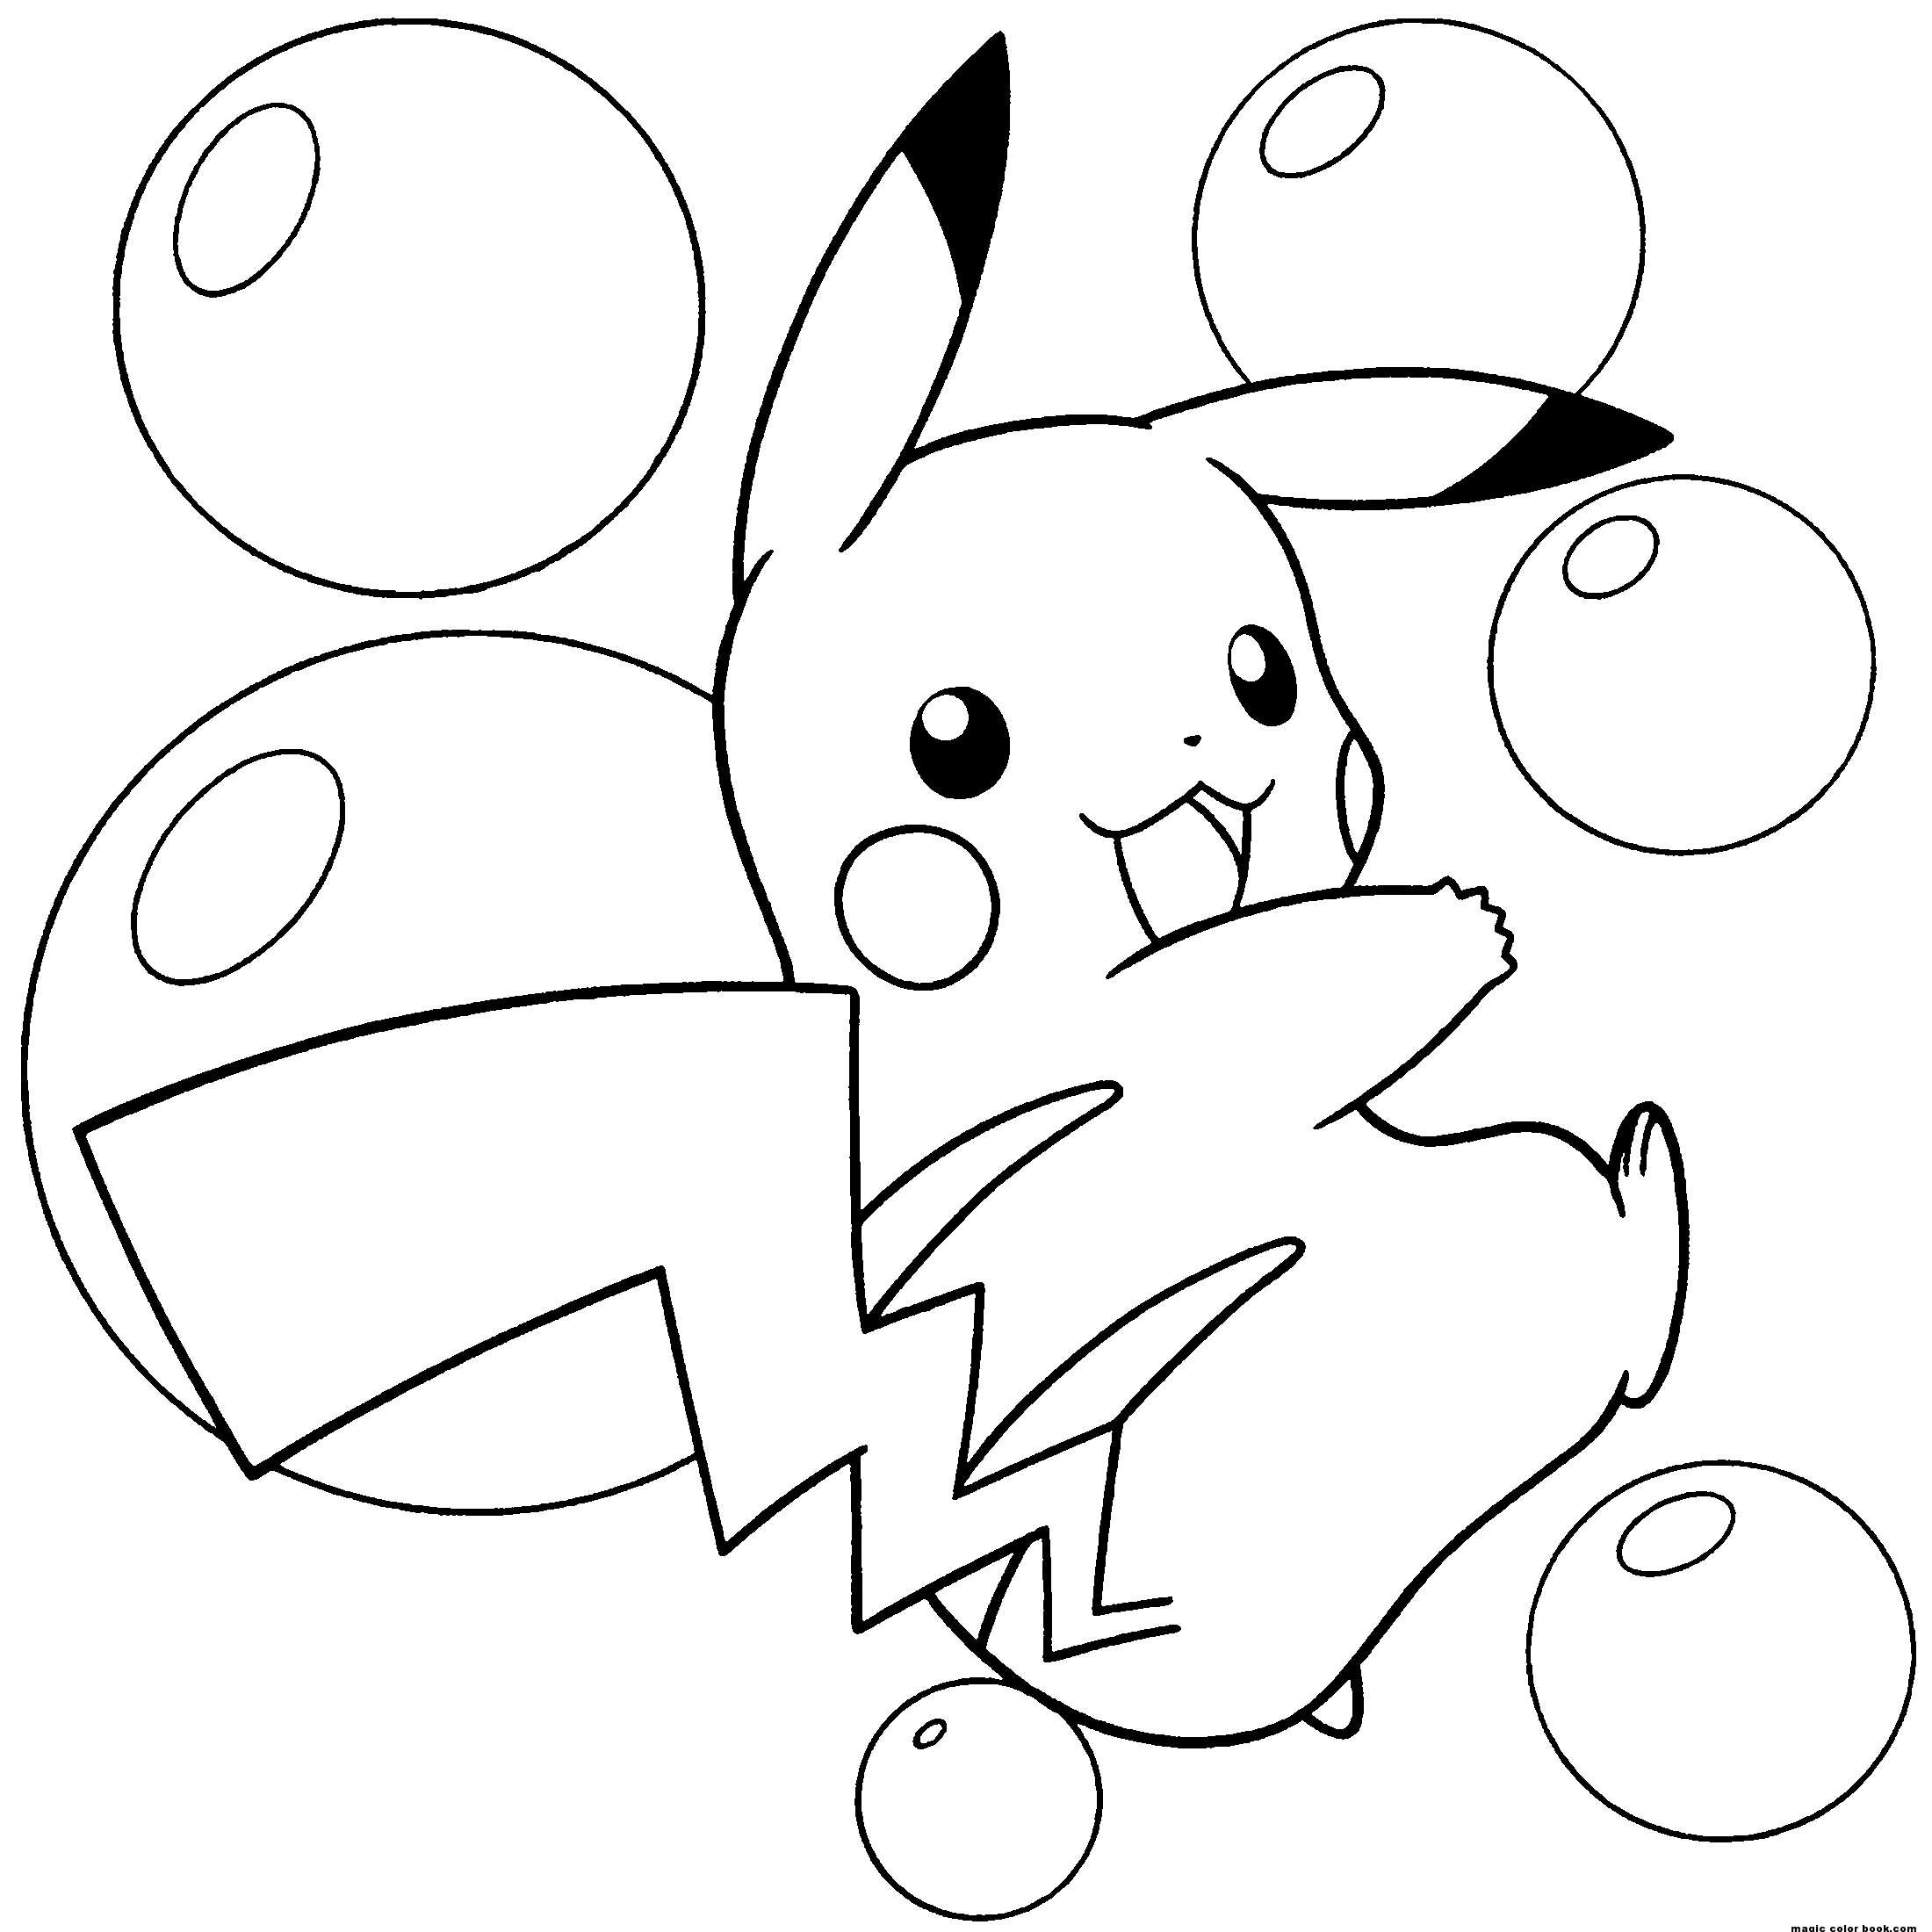 10 coloring pages of pokemon